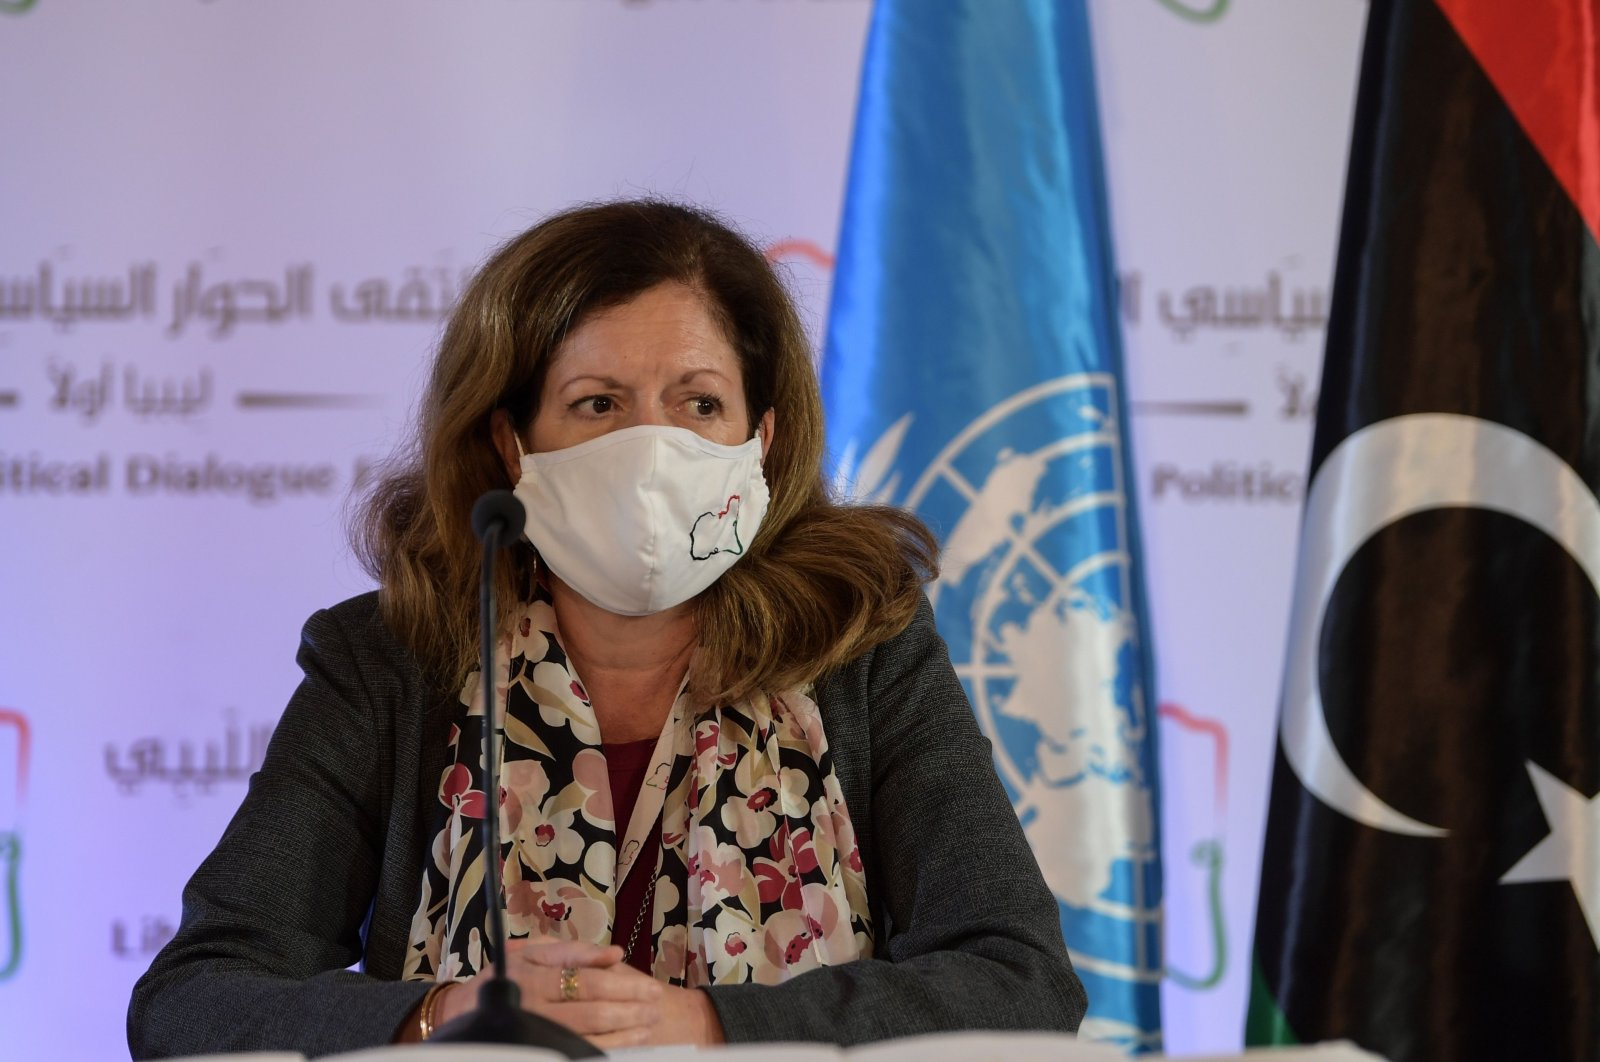 United Nations acting envoy to Libya Stephanie Williams wears a mask before giving a press conference following two days of talks on the Libyan conflict in the capital Tunis, Tunisia, Nov. 11, 2020. (AFP Photo)